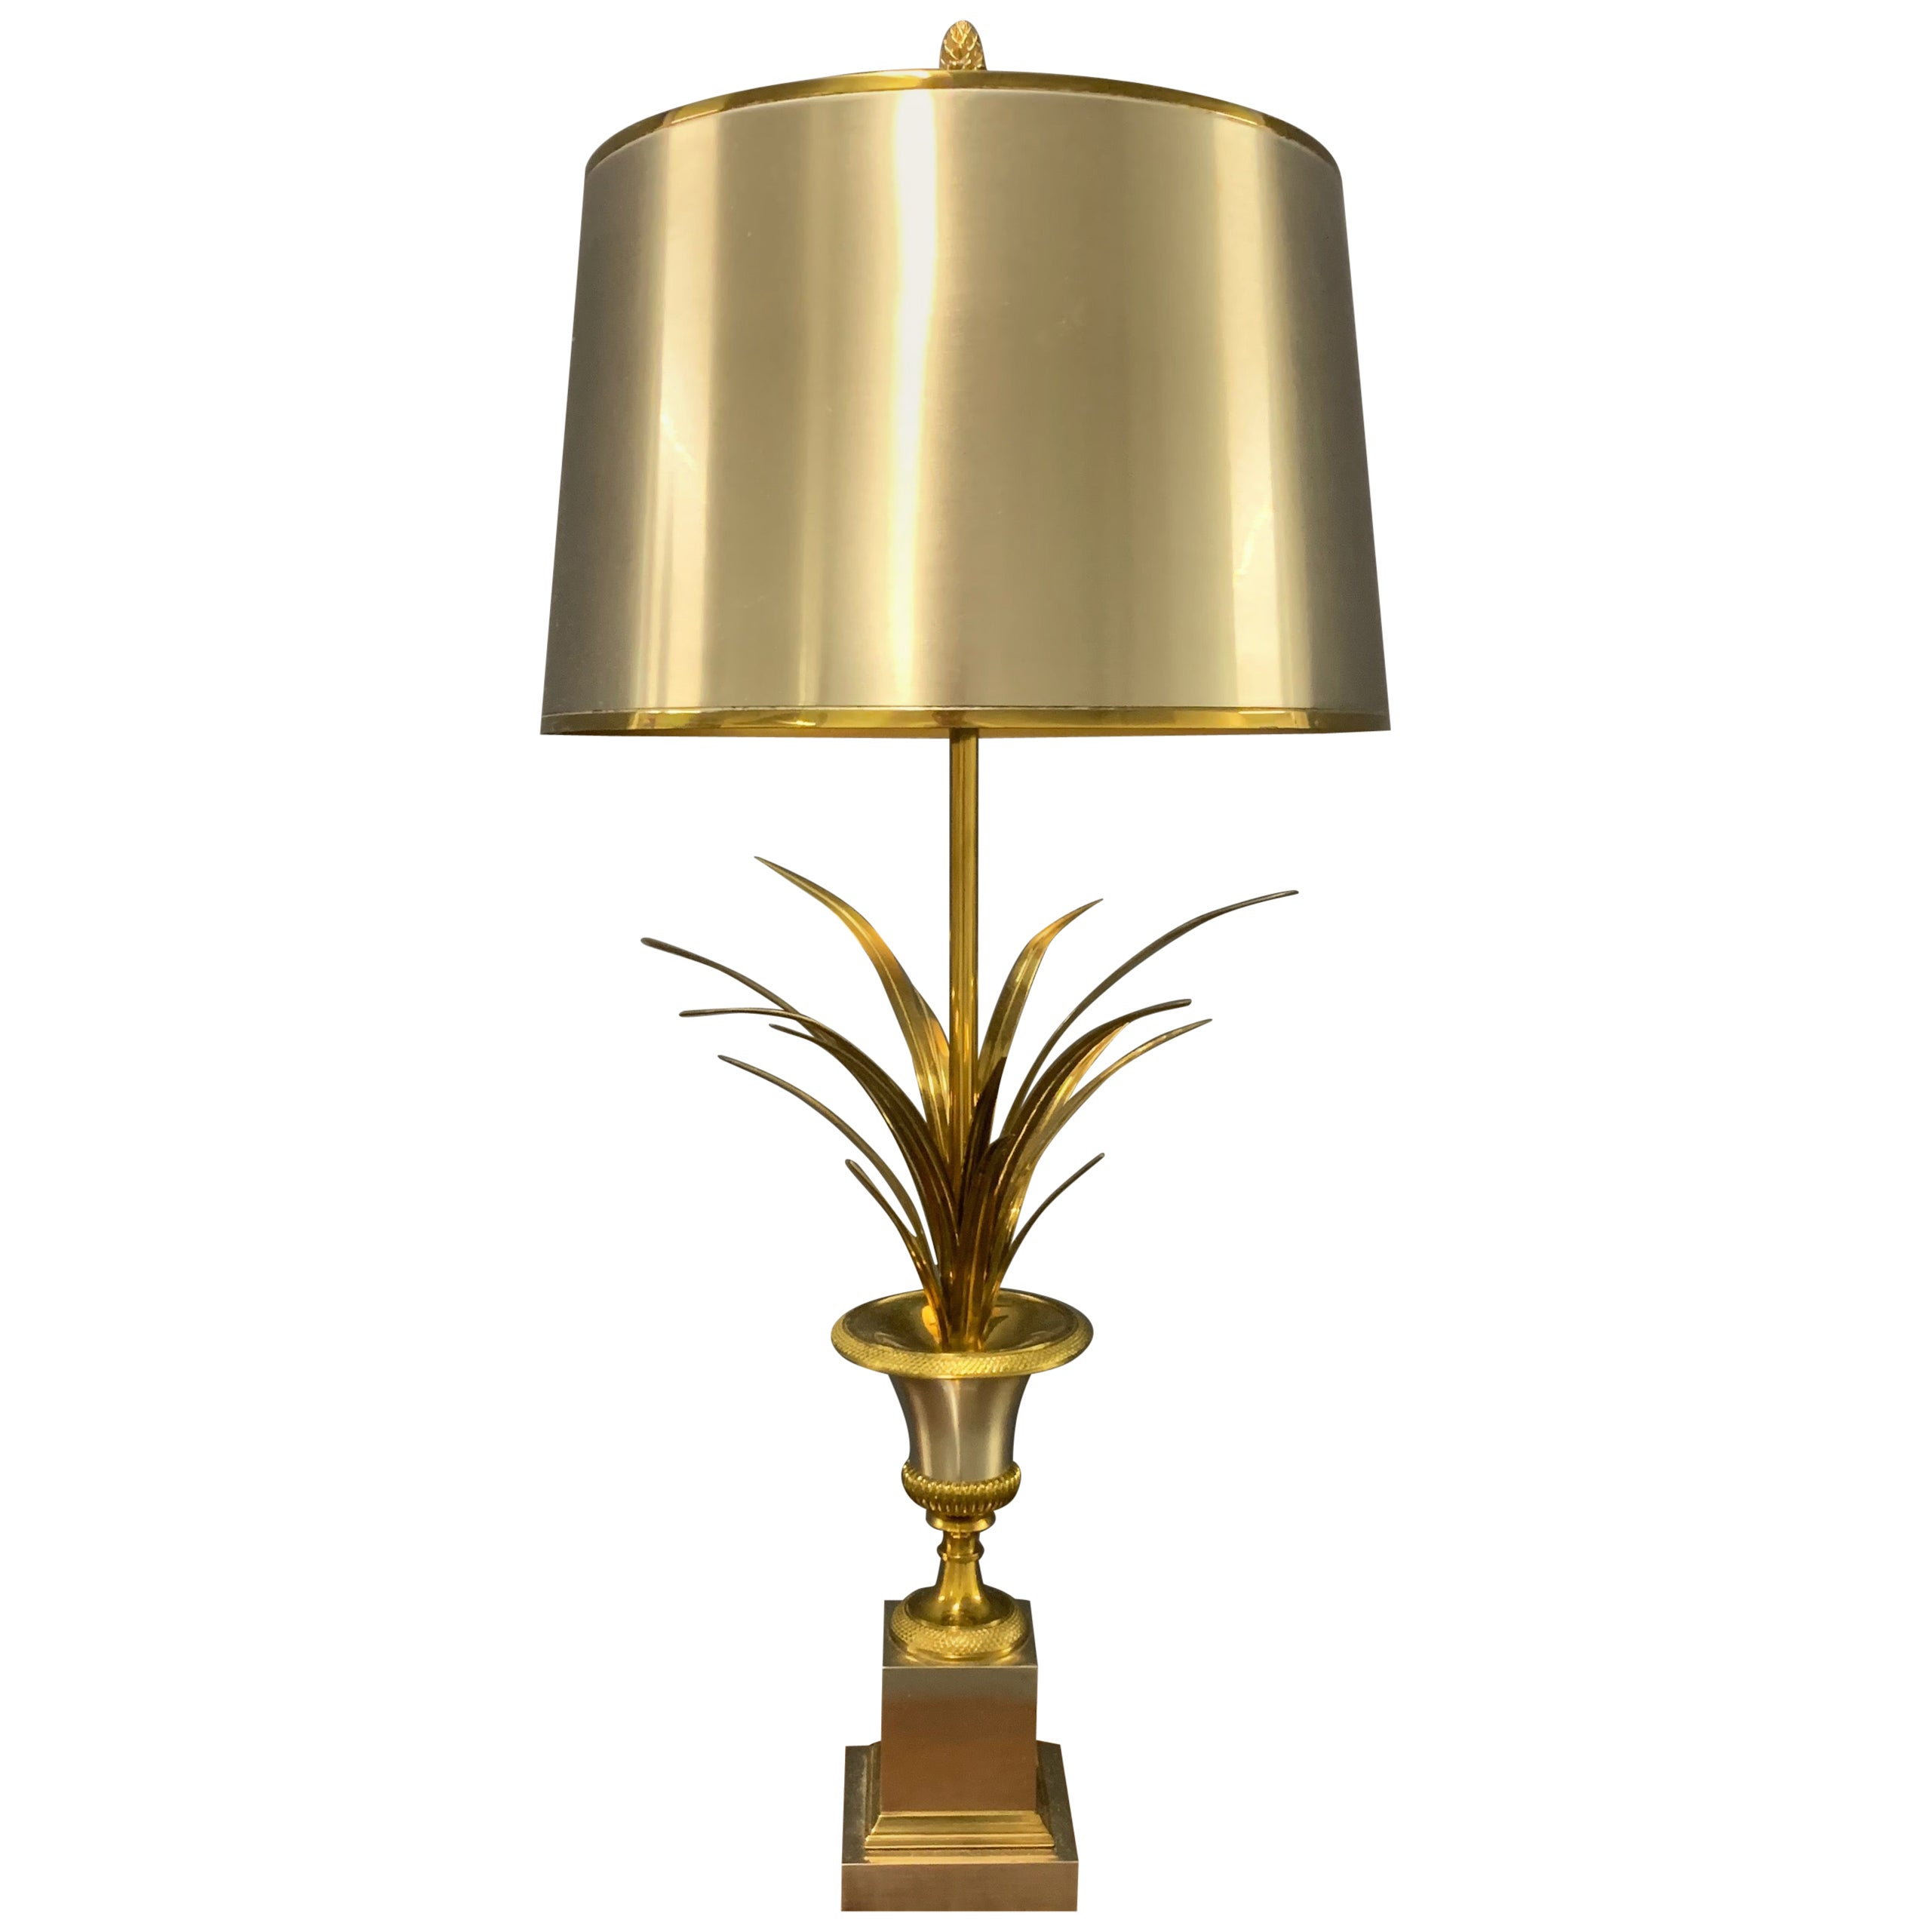 Signed Maison Charles Table Lamp